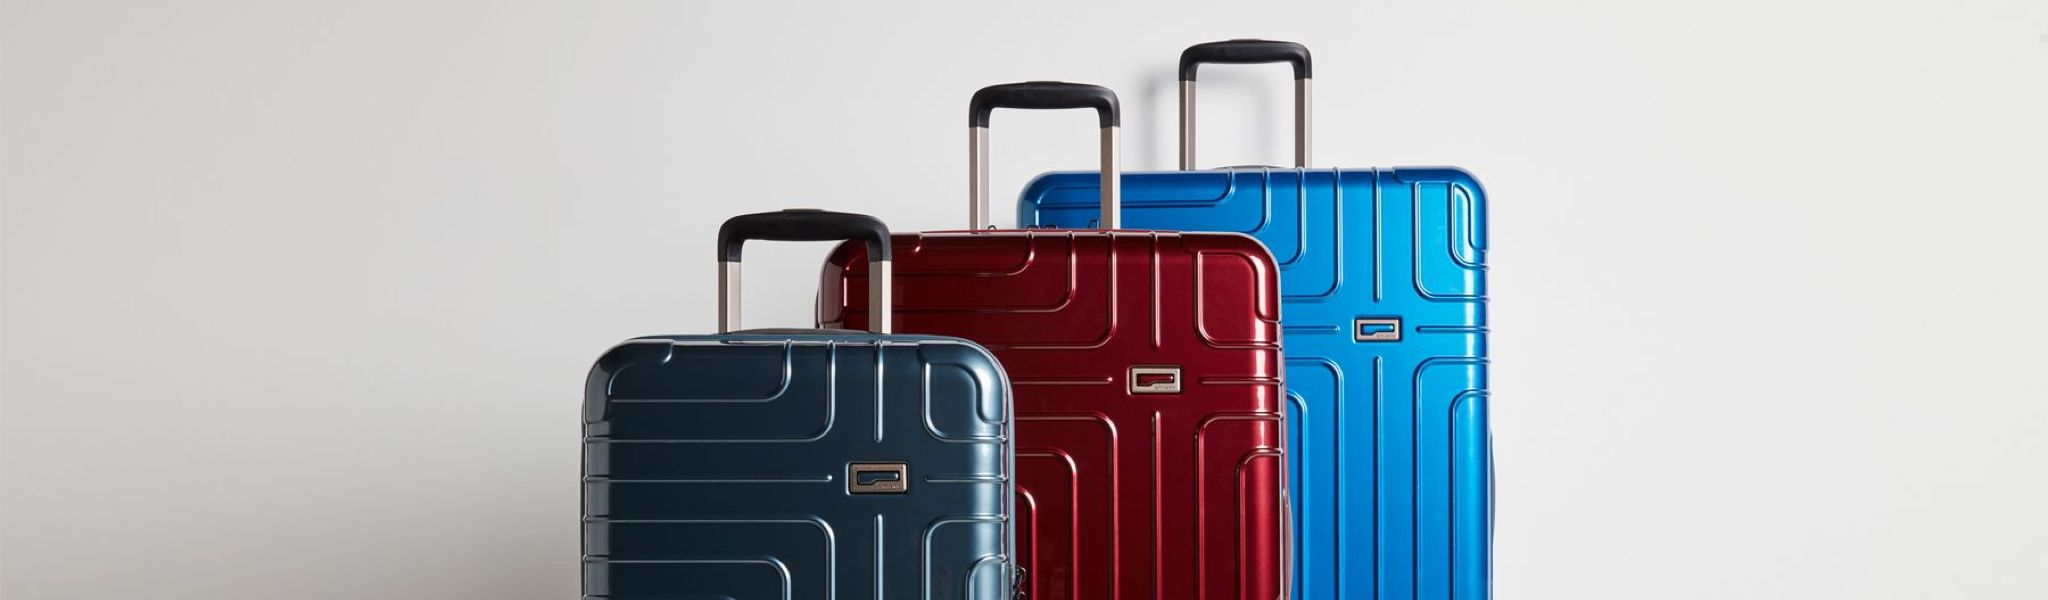 d51517dc44a7 Luggage